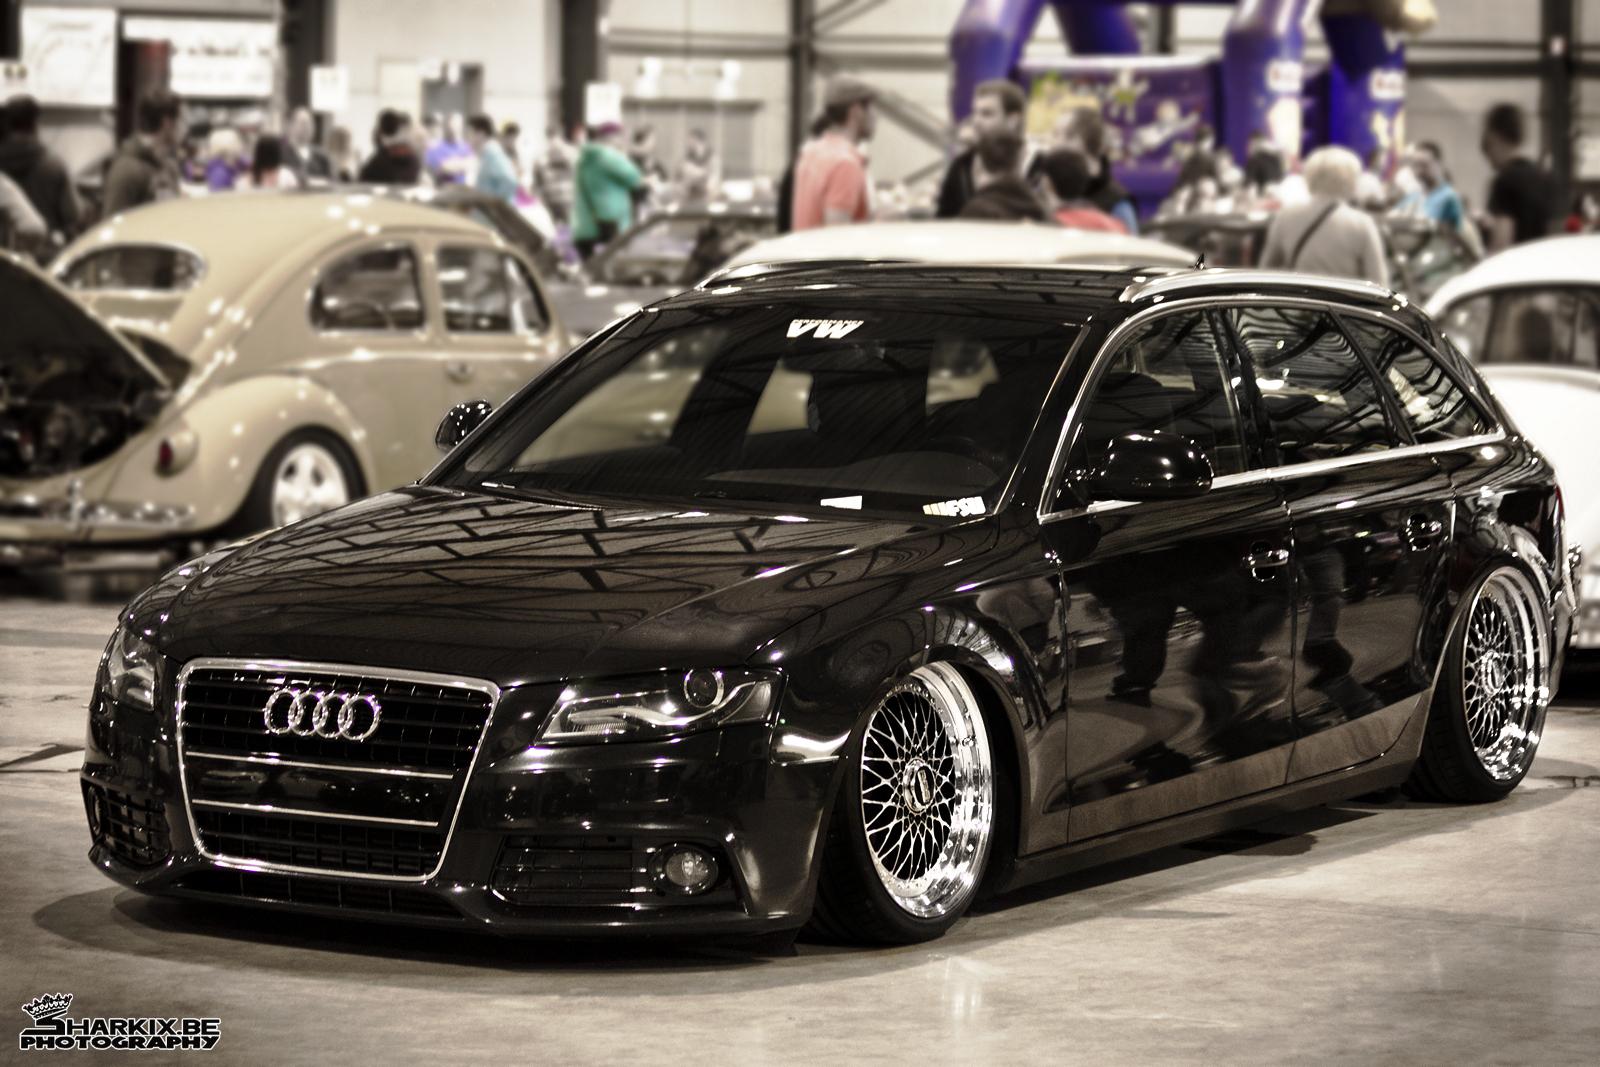 Audi a4 b8 avant on bbs wheels low inspiring oh i can t wait cars pinterest bbs wheels audi a4 and audi